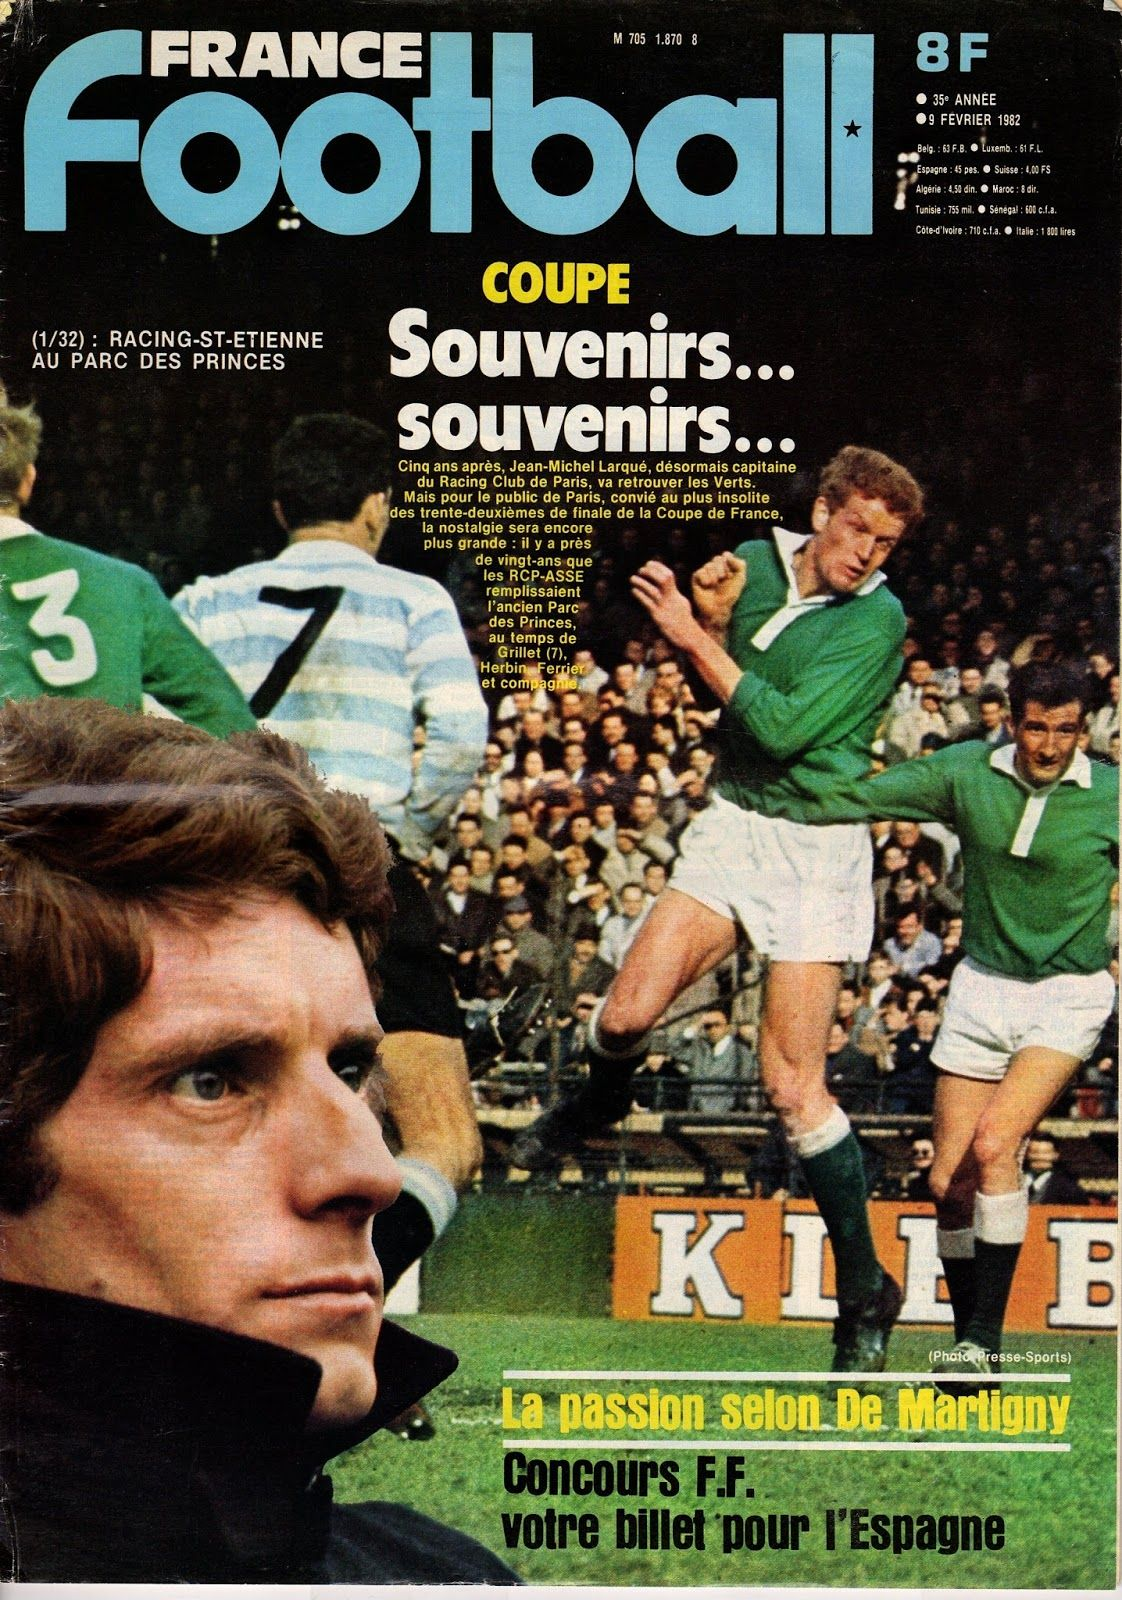 France Football magazine in Feb 1982 featuring Racing